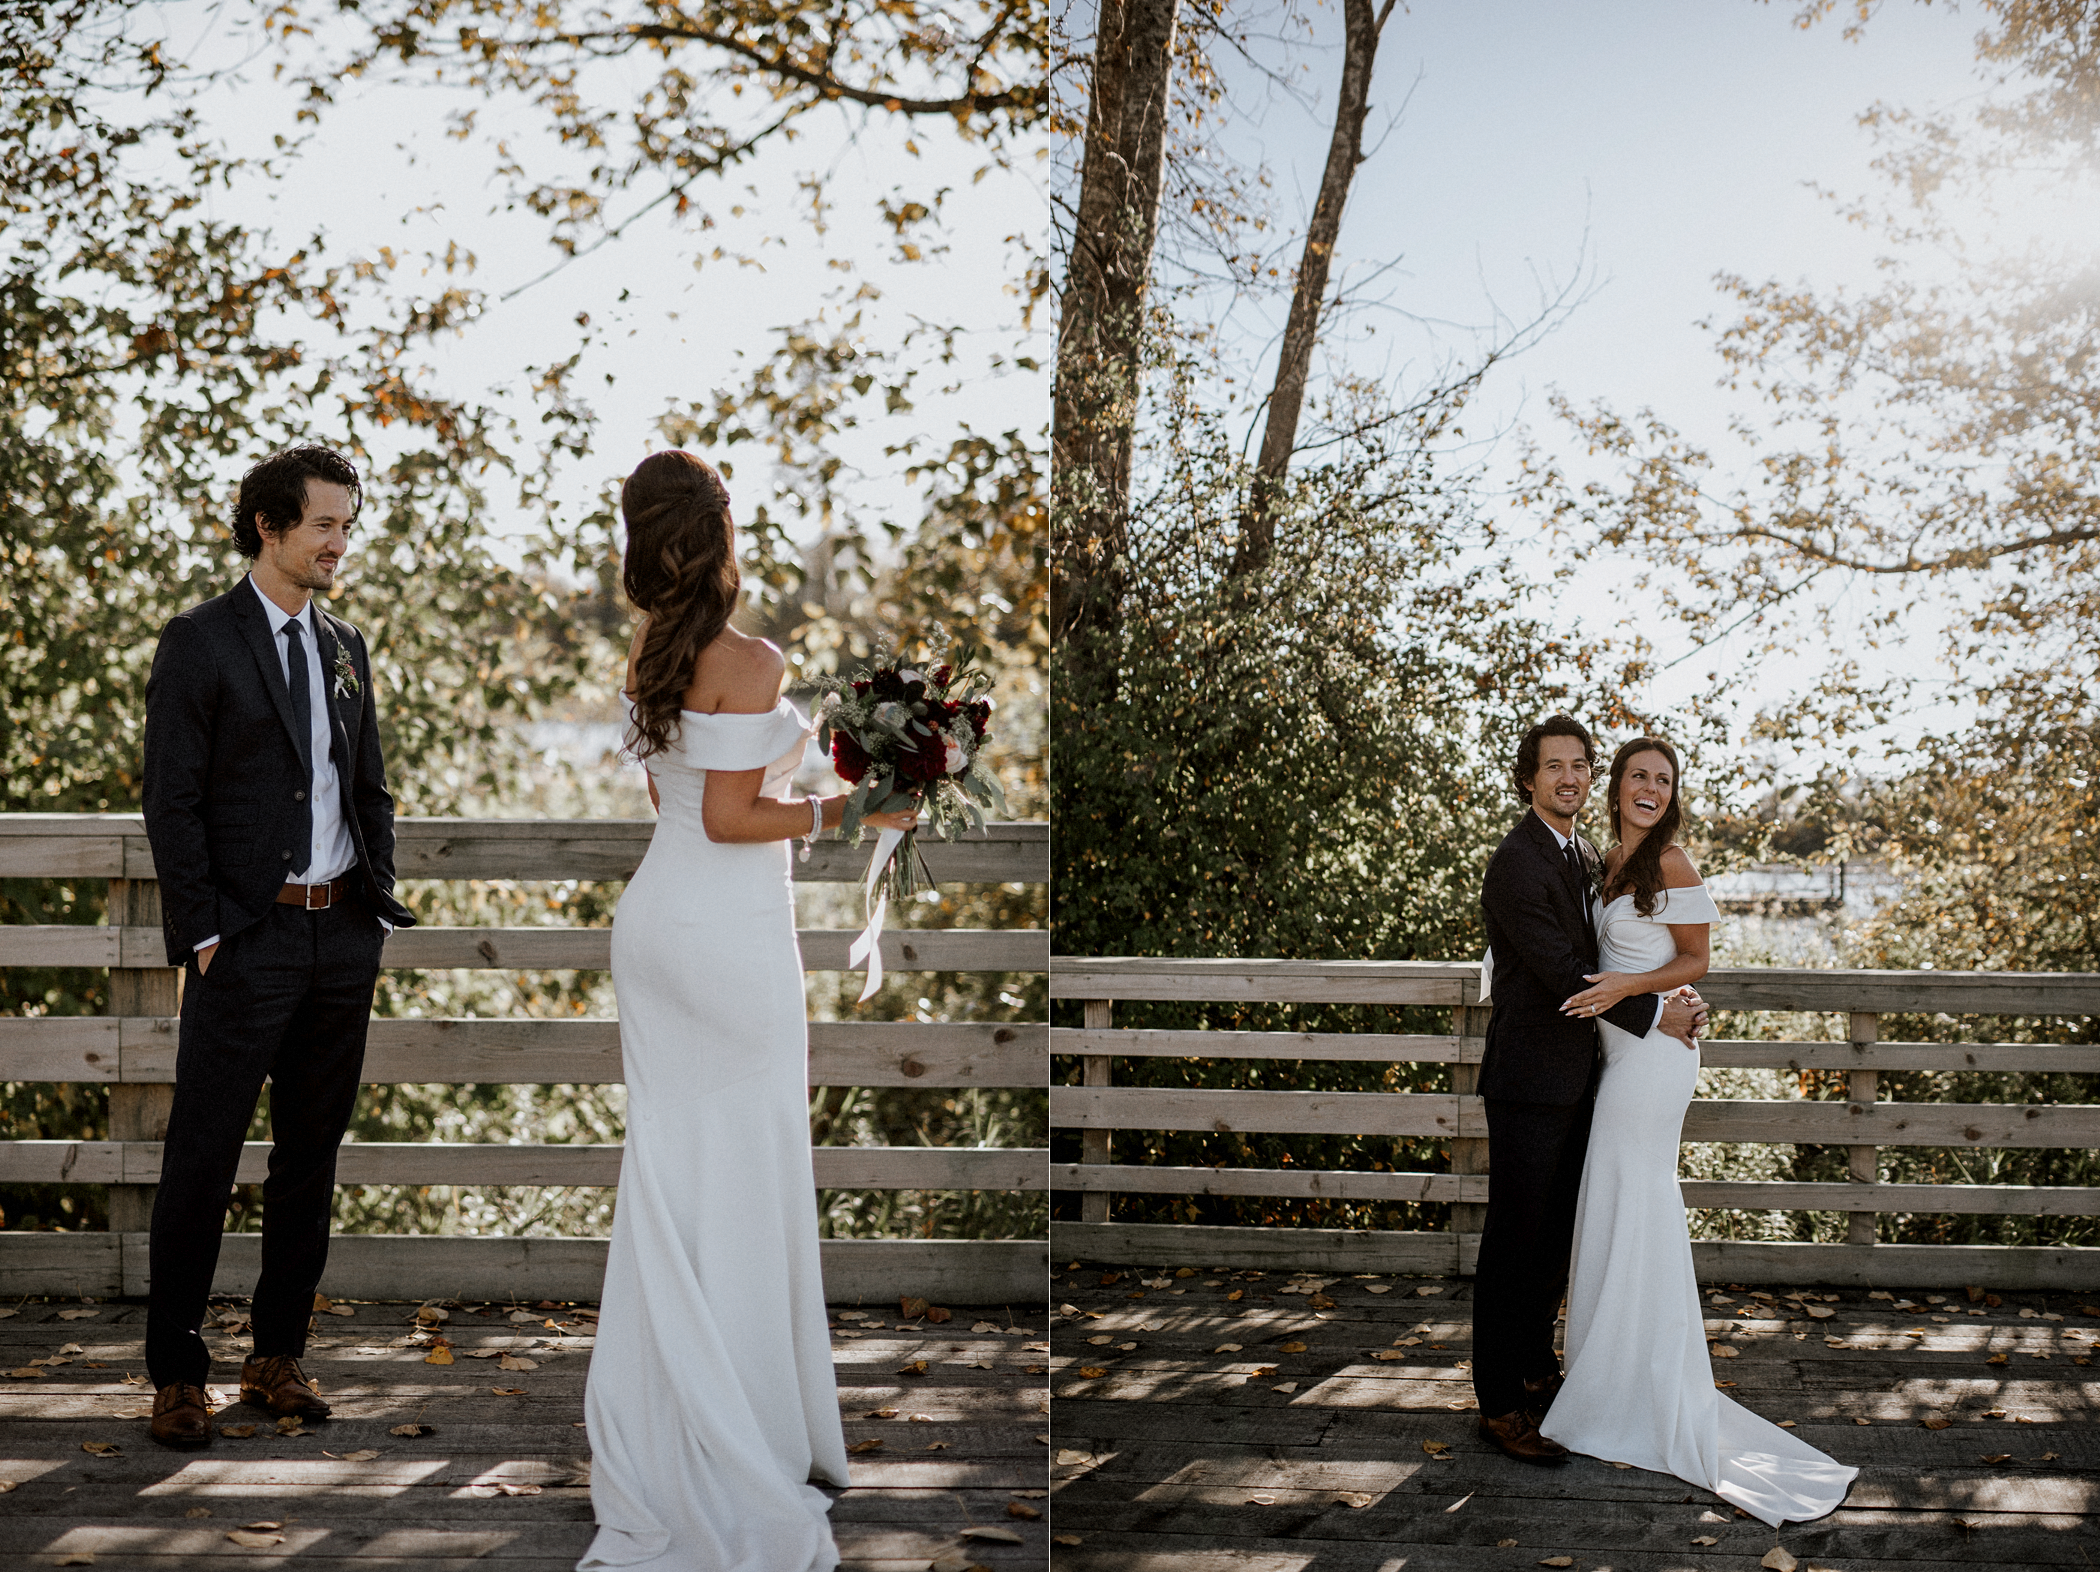 026-kaoverii-silva-MT-ubc-boathouse-industrial-wedding-photography-blog.png